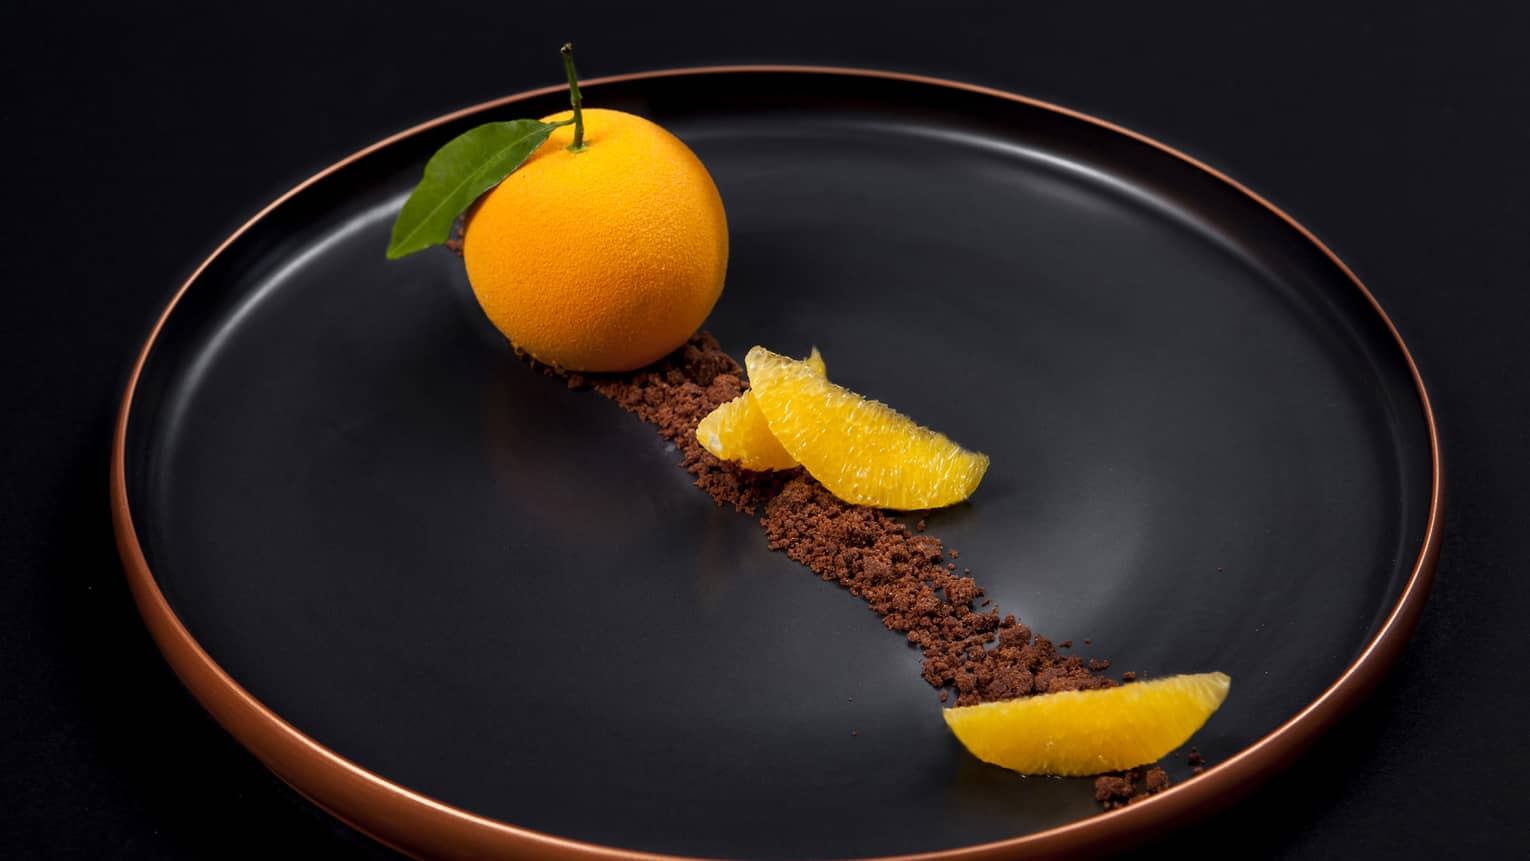 The Orange Signature Dessert served with cinnamon